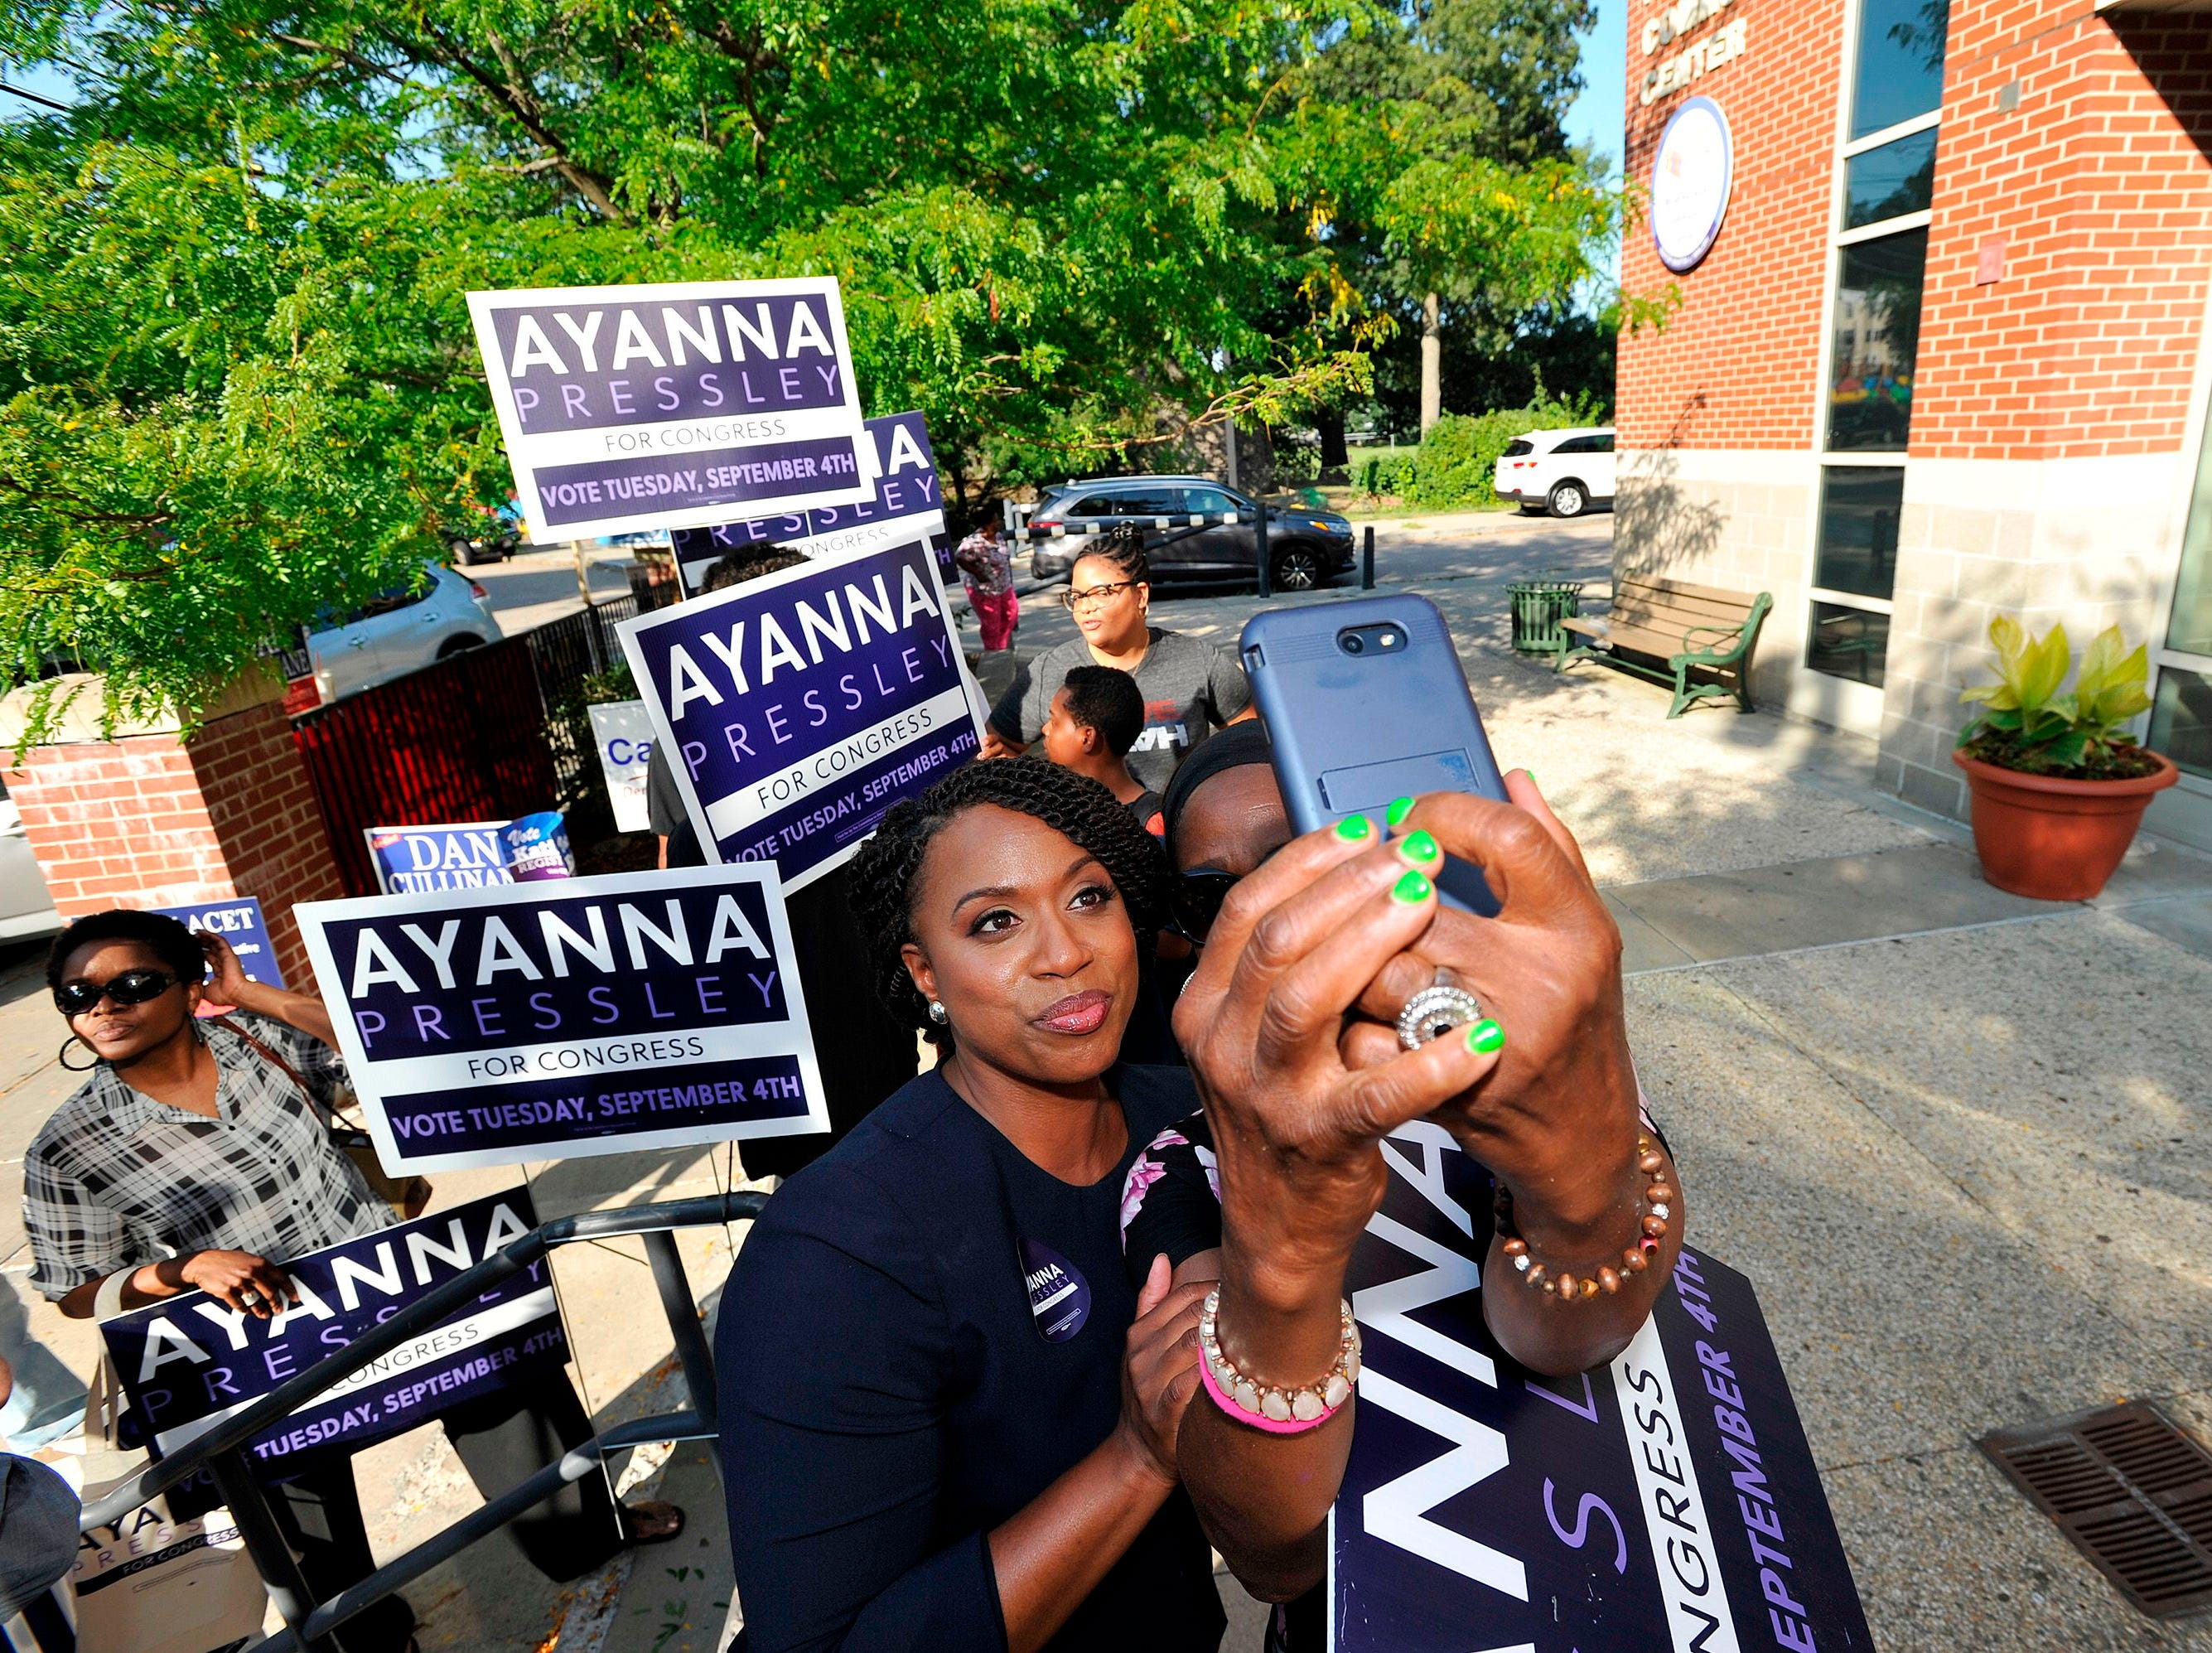 Ayanna Pressley, Democratic candidate for Congress,  takes a selfie with a supporter at the Mildred Middle School and Community Center in Boston, that served as a polling station for primary election on September 4, 2018.